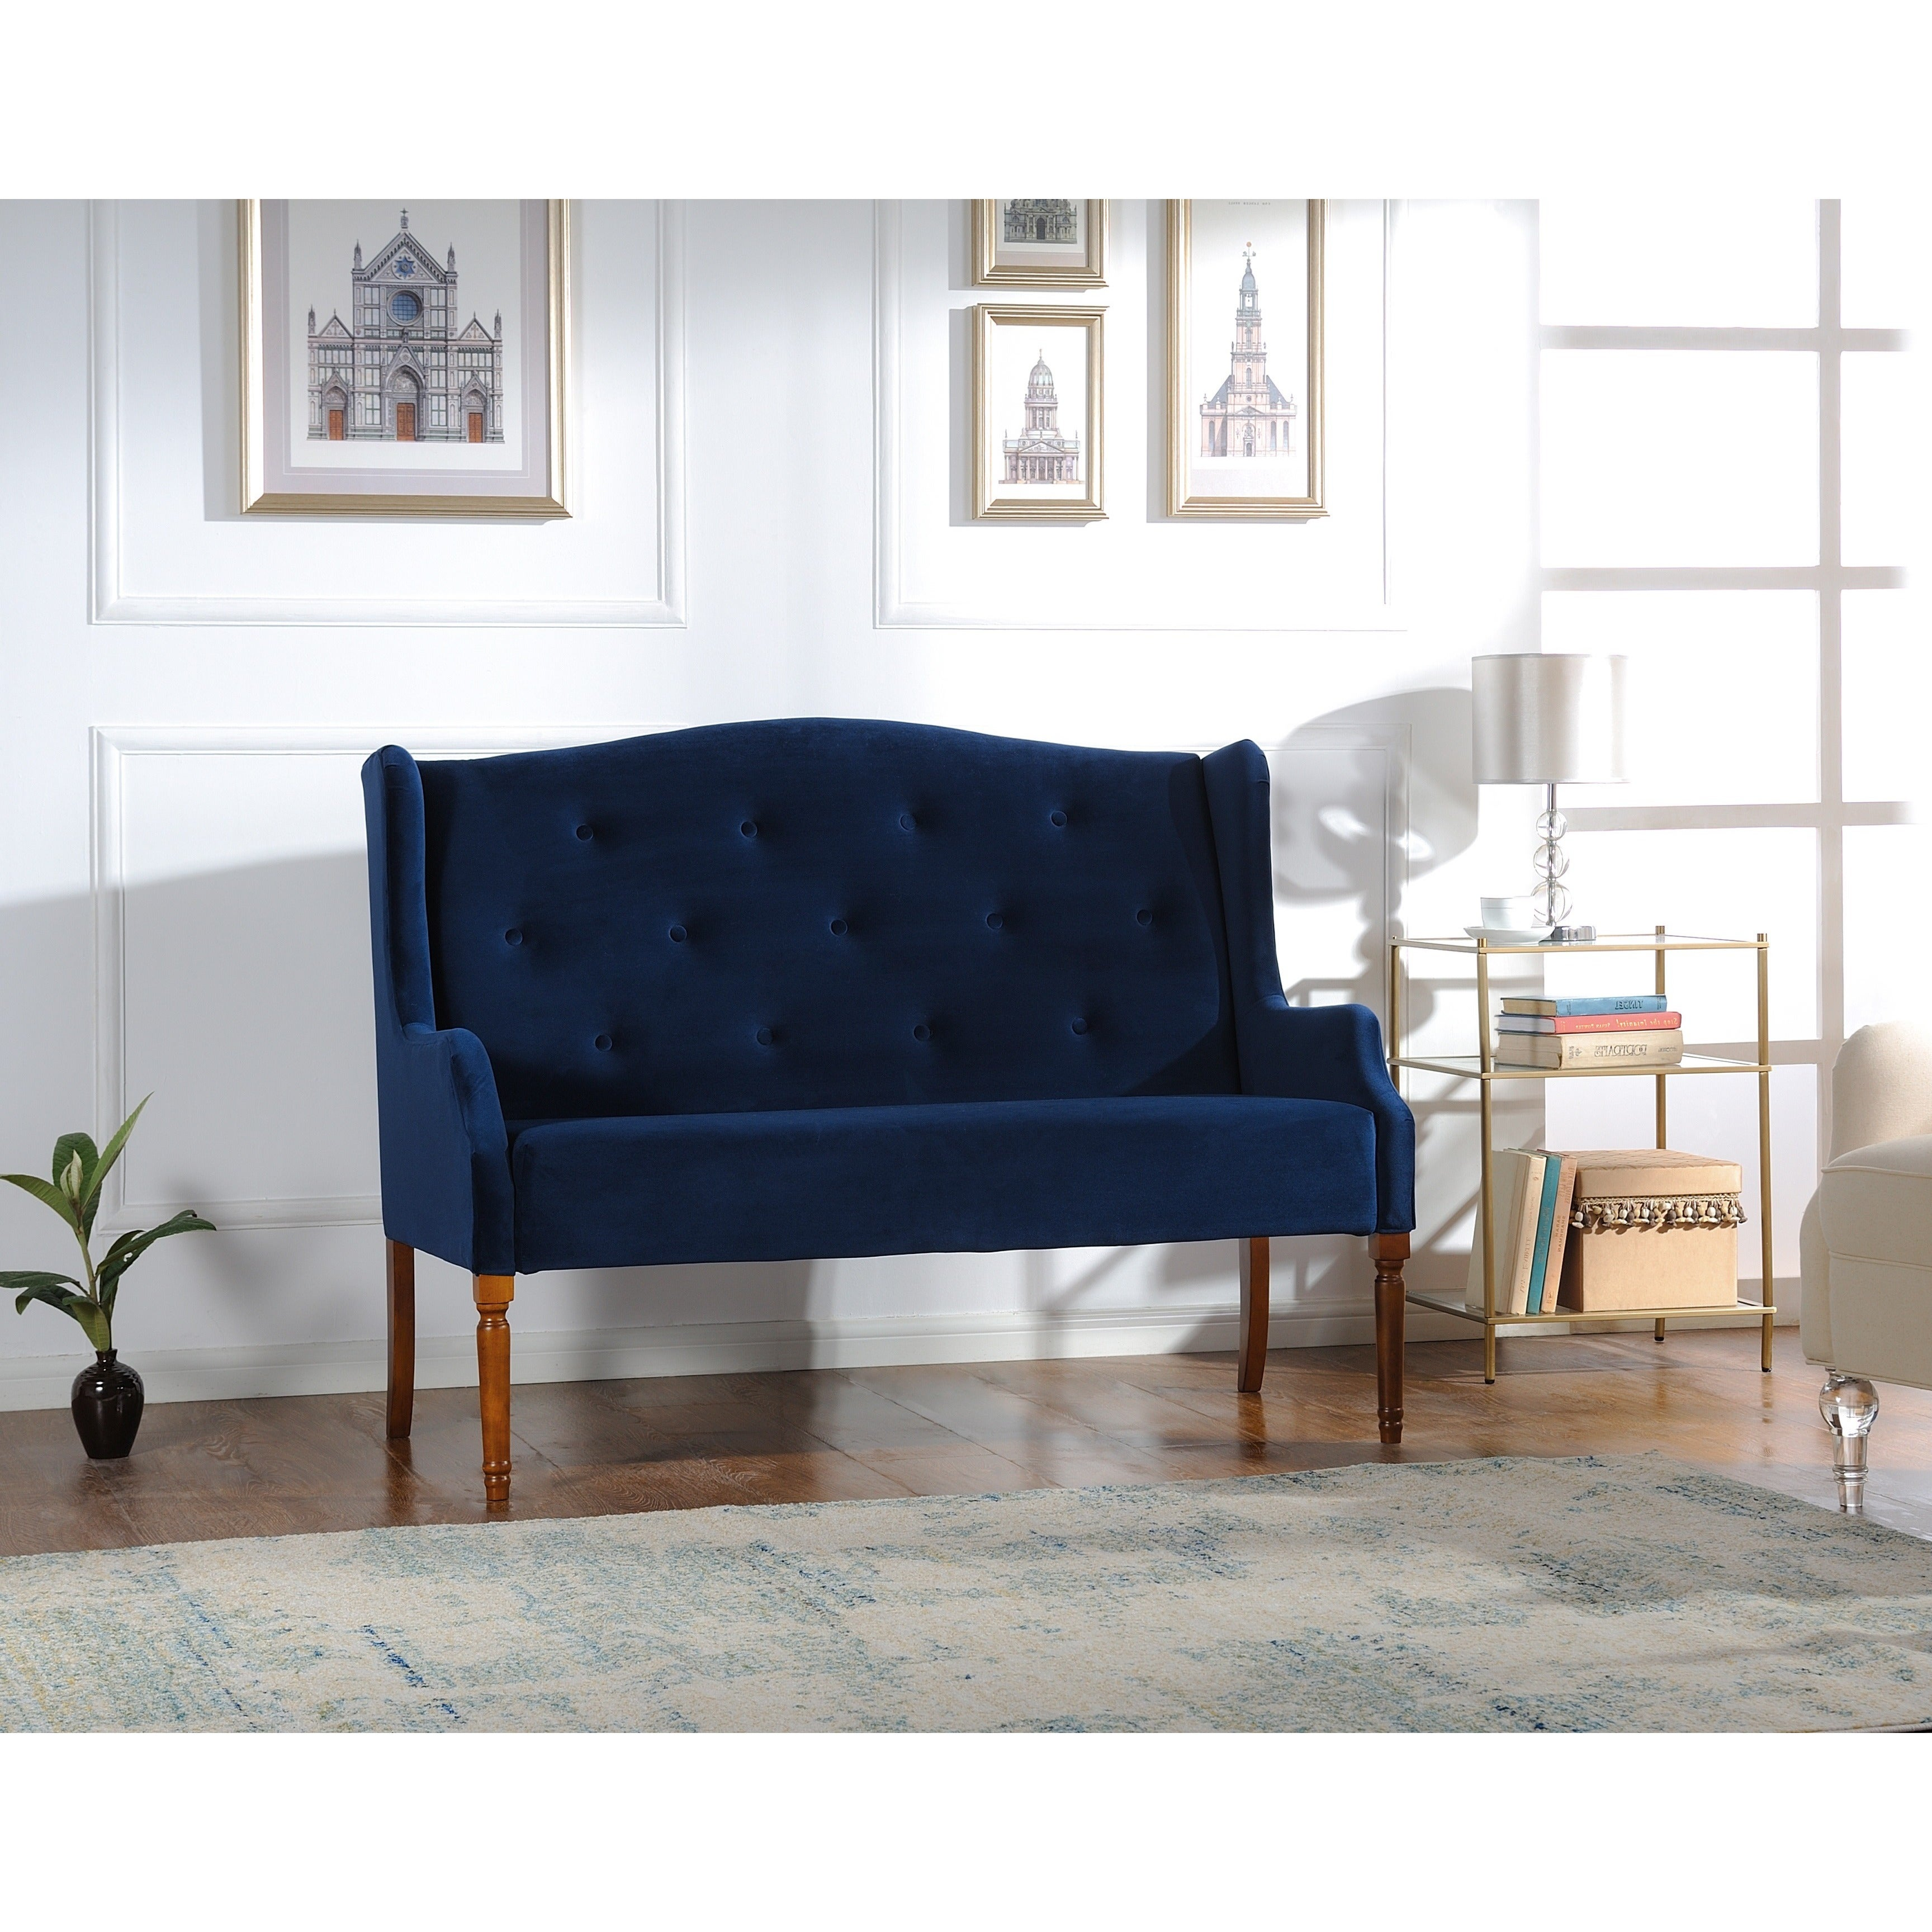 of photo upholstered design bench bedroom full settee benches astounding back new cushion with arms mhf sofa rolled modern tufted size high home seat